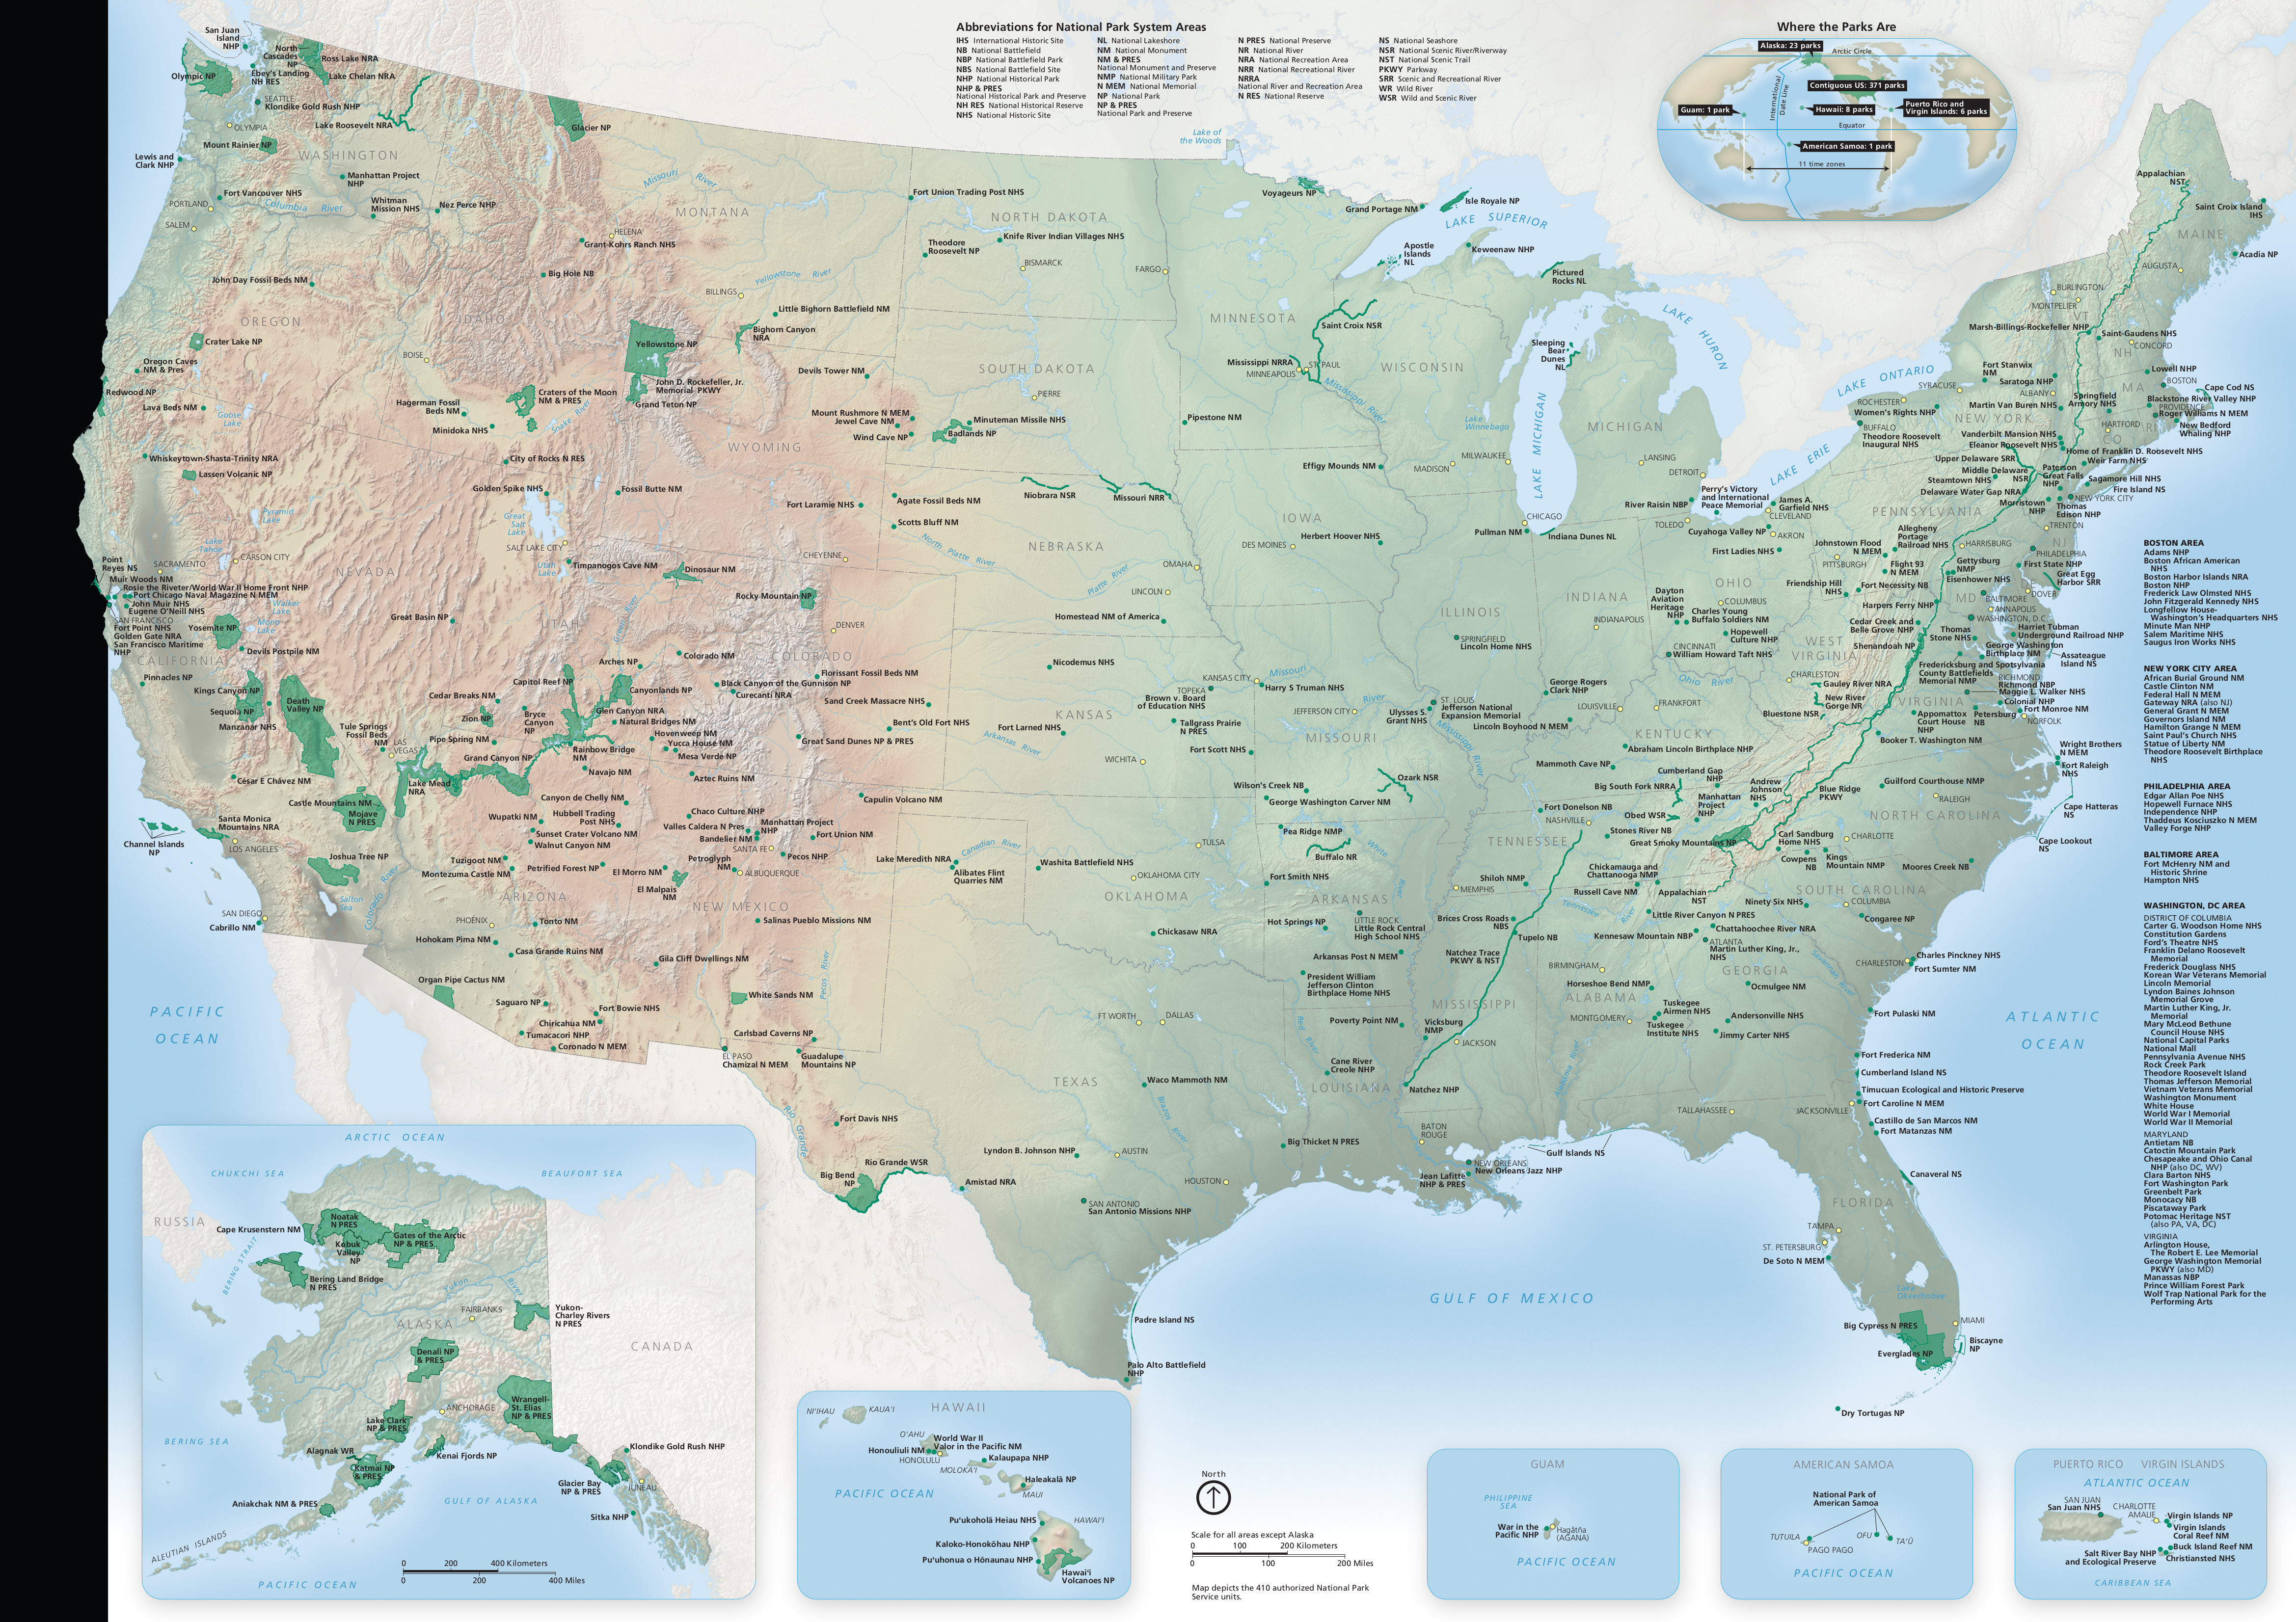 National Park Map National Park Maps | NPMaps.  just free maps, period. National Park Map